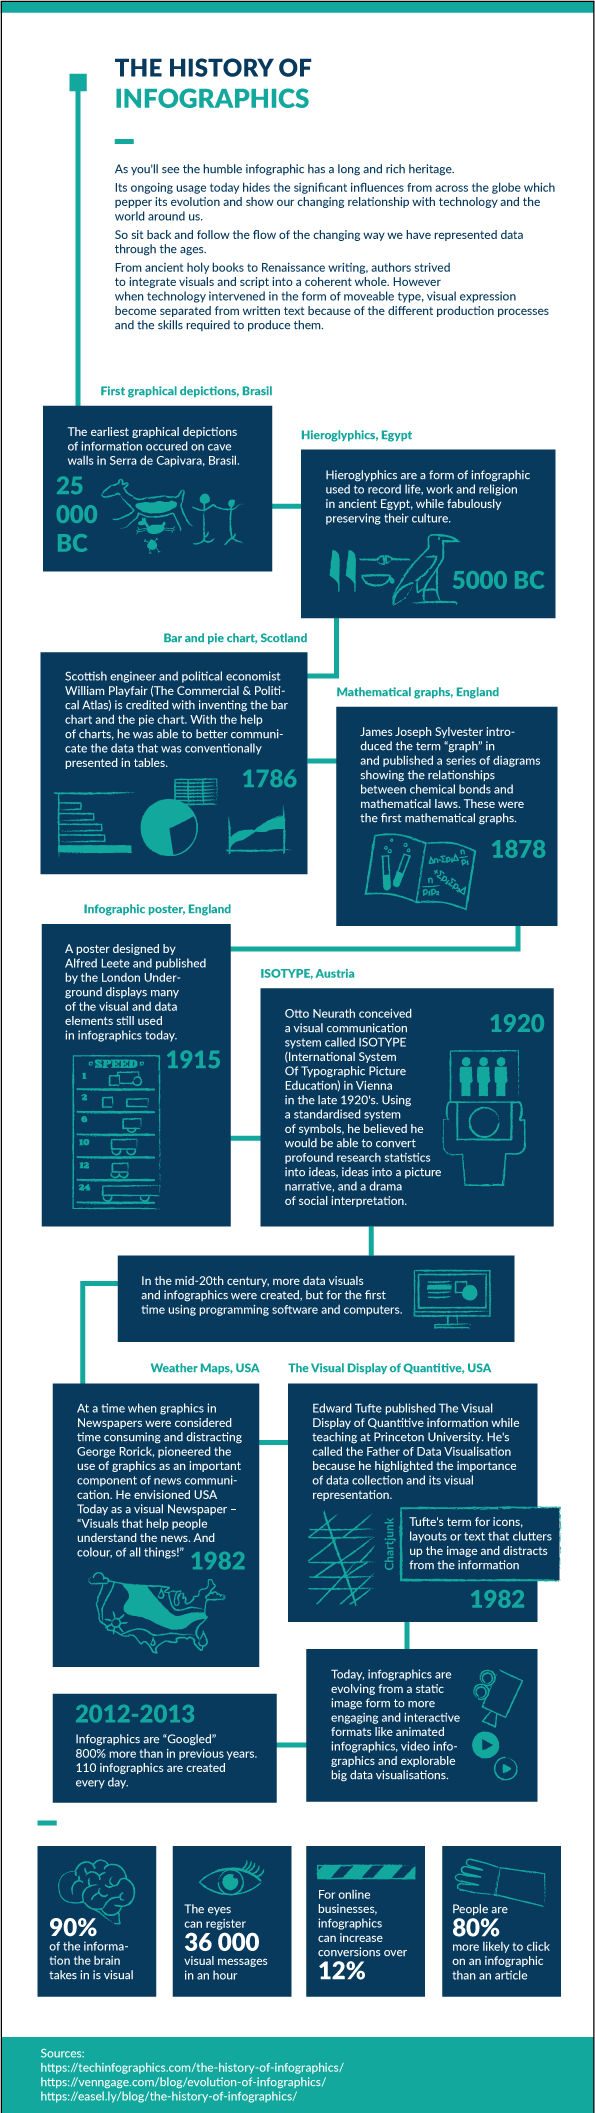 The History of Infographics 3